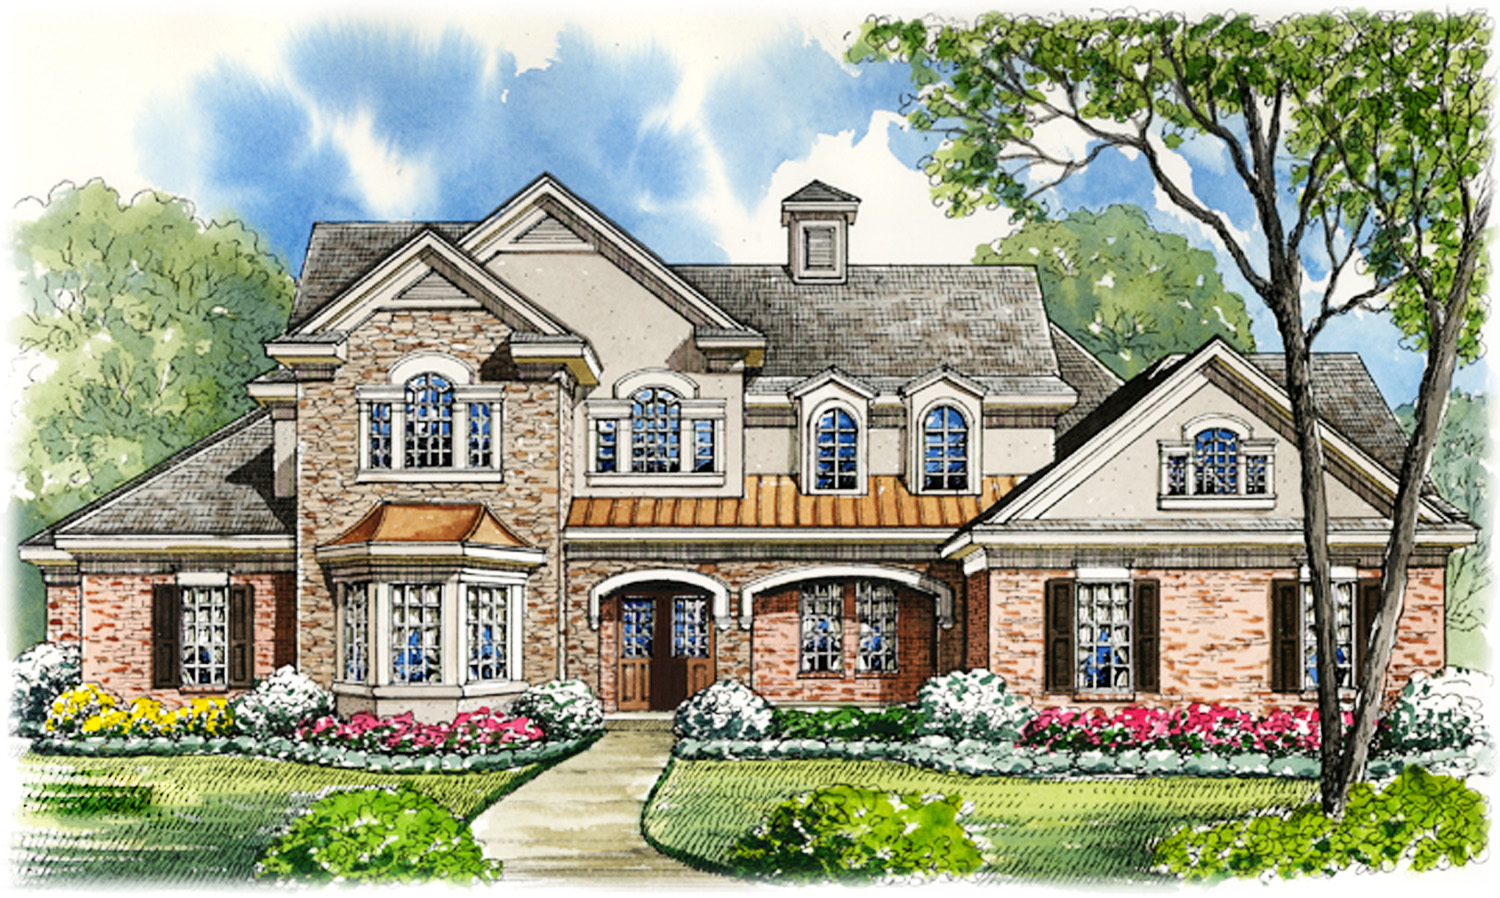 Casita with gazebo ceiling 67071gl architectural for House plans with casitas